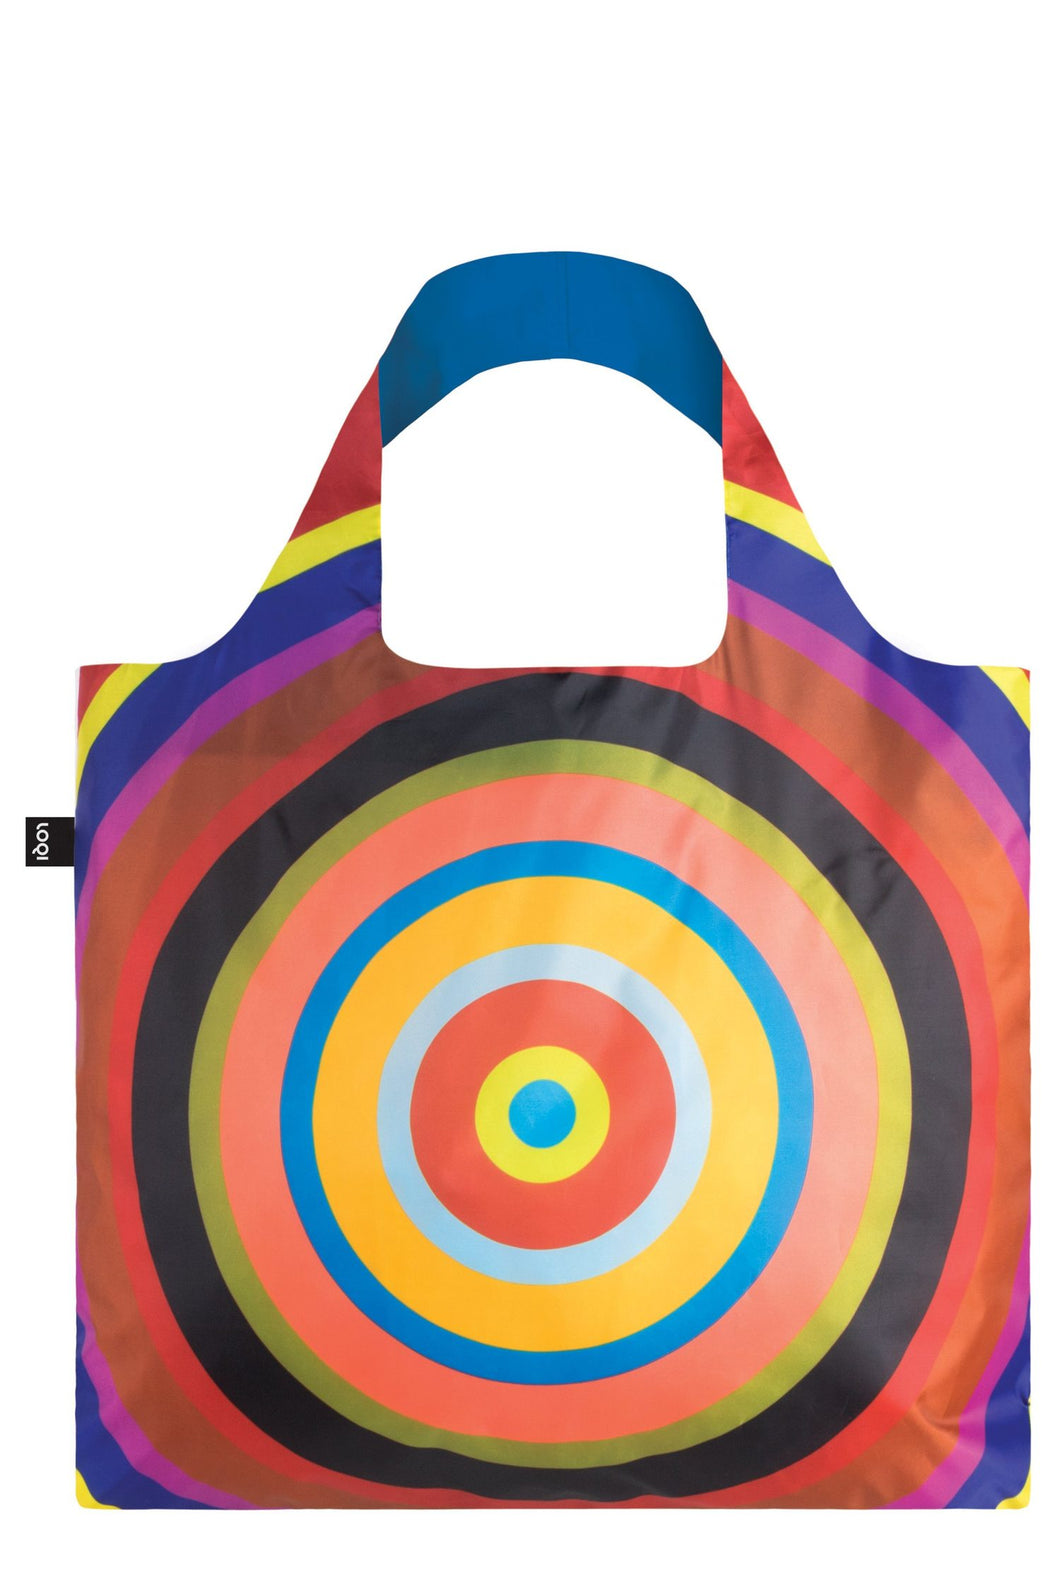 Tote Bag -Target by Paul Gernes